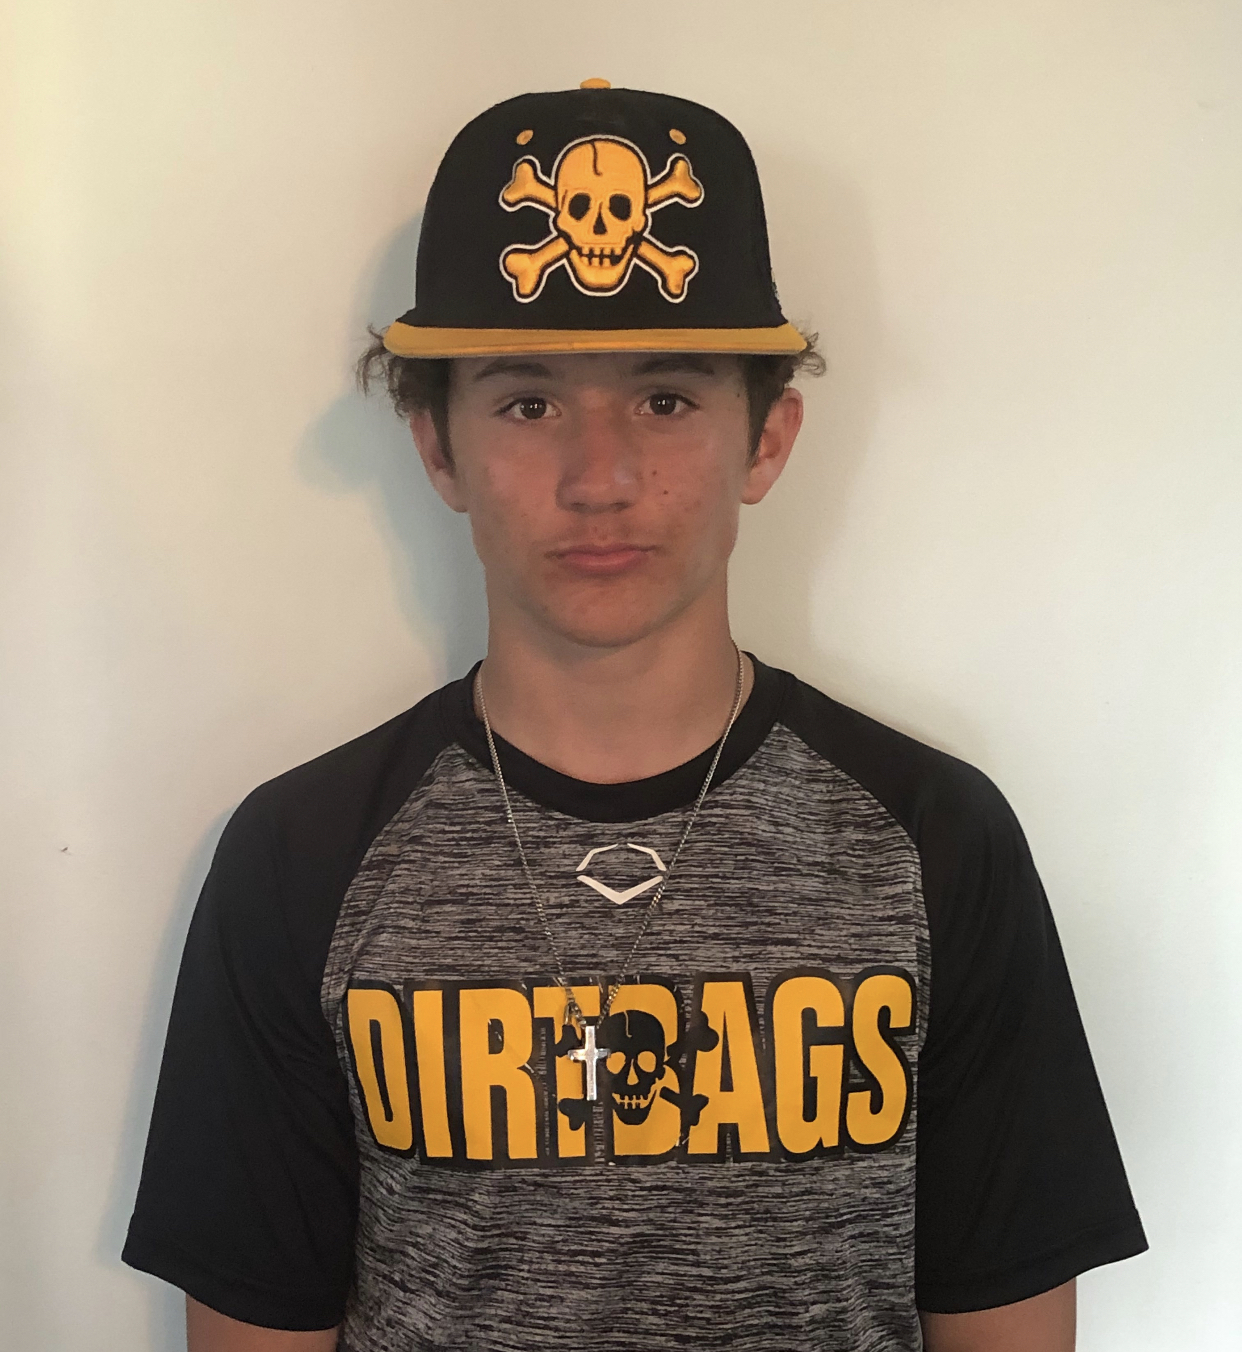 Dirtbags Middle School Program Experience: Connor Bellew